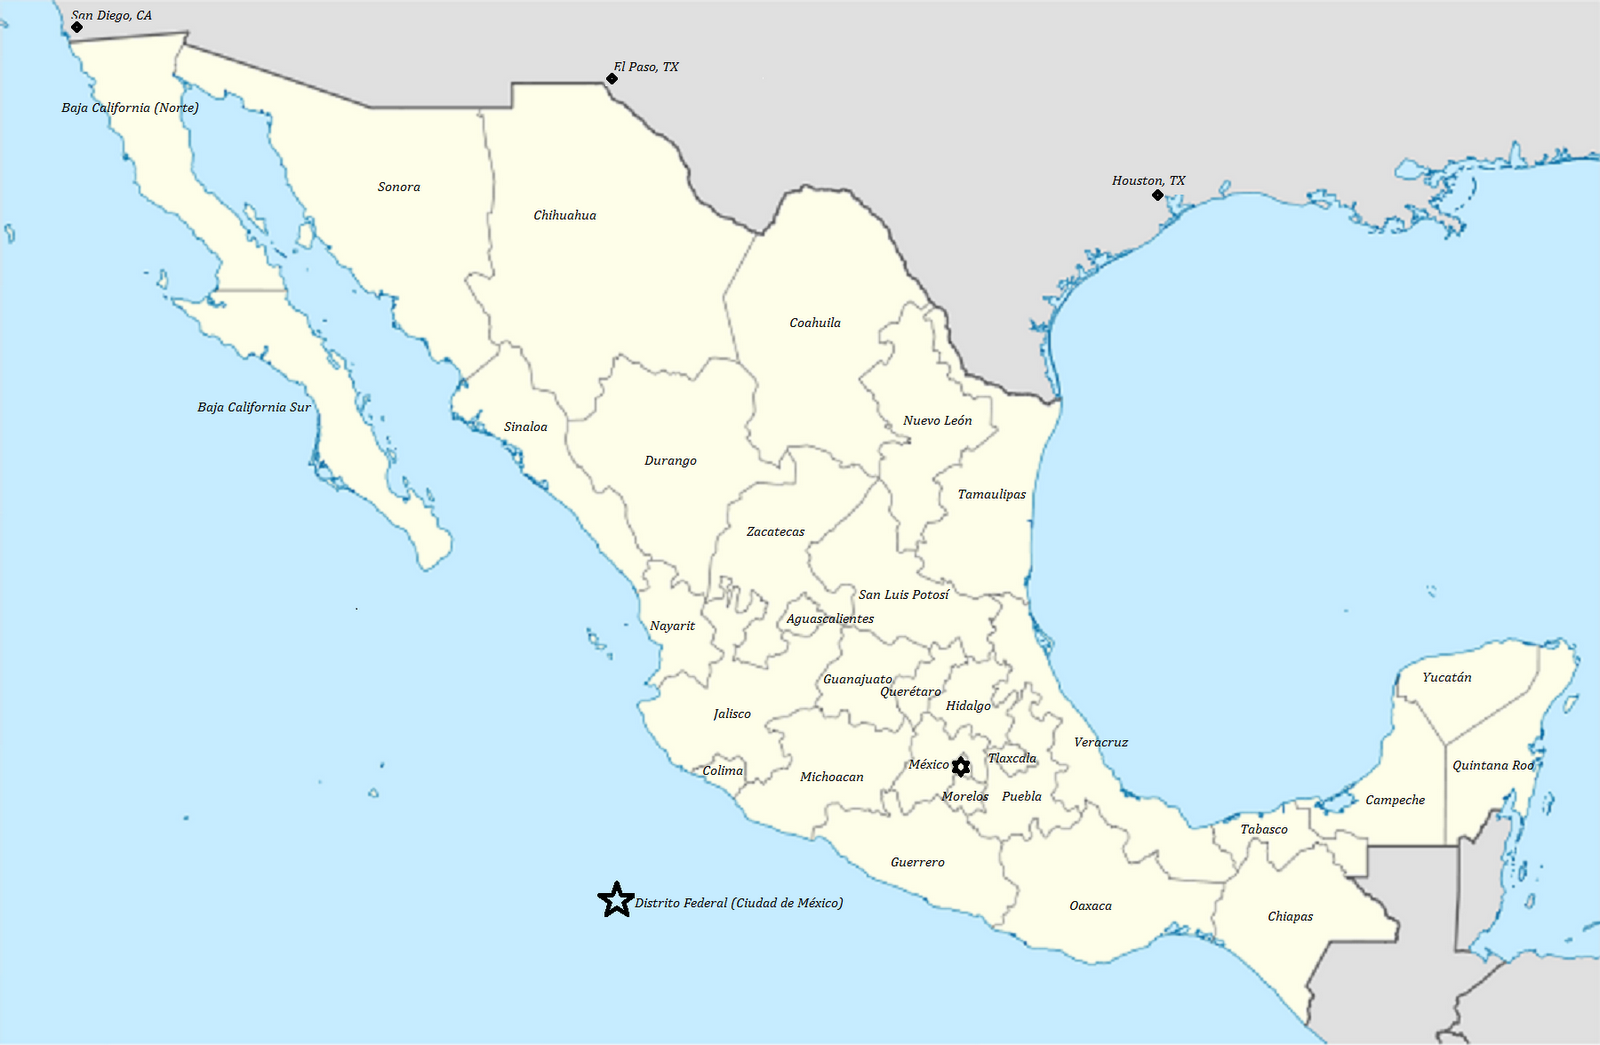 My Spanish Trainer: Un Mapa de México - A Map of The Mexican States